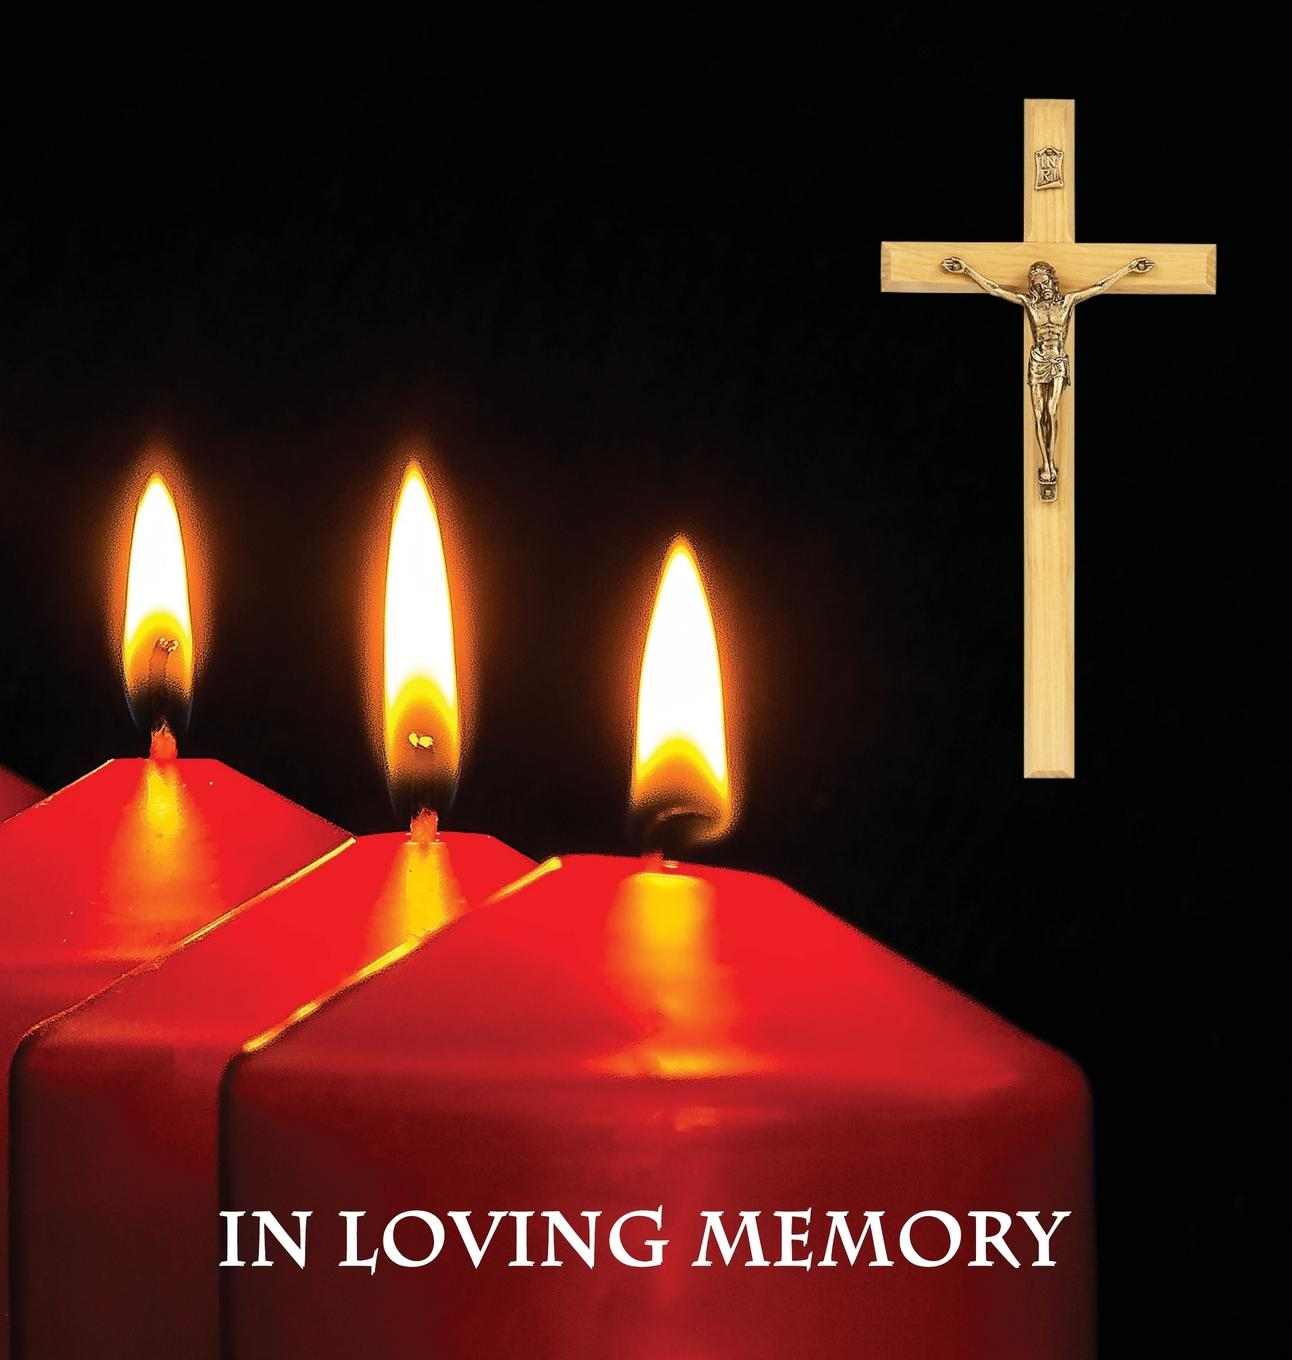 In Loving Memory Funeral Guest Book, Memorial Guest Book, Condolence Book, Remembrance Book for Funerals or Wake, Memorial Service Guest Book : A Celebration of Life and a Lasting Memory for the Family. Religious Theme. Hardcover with a Gloss Finish